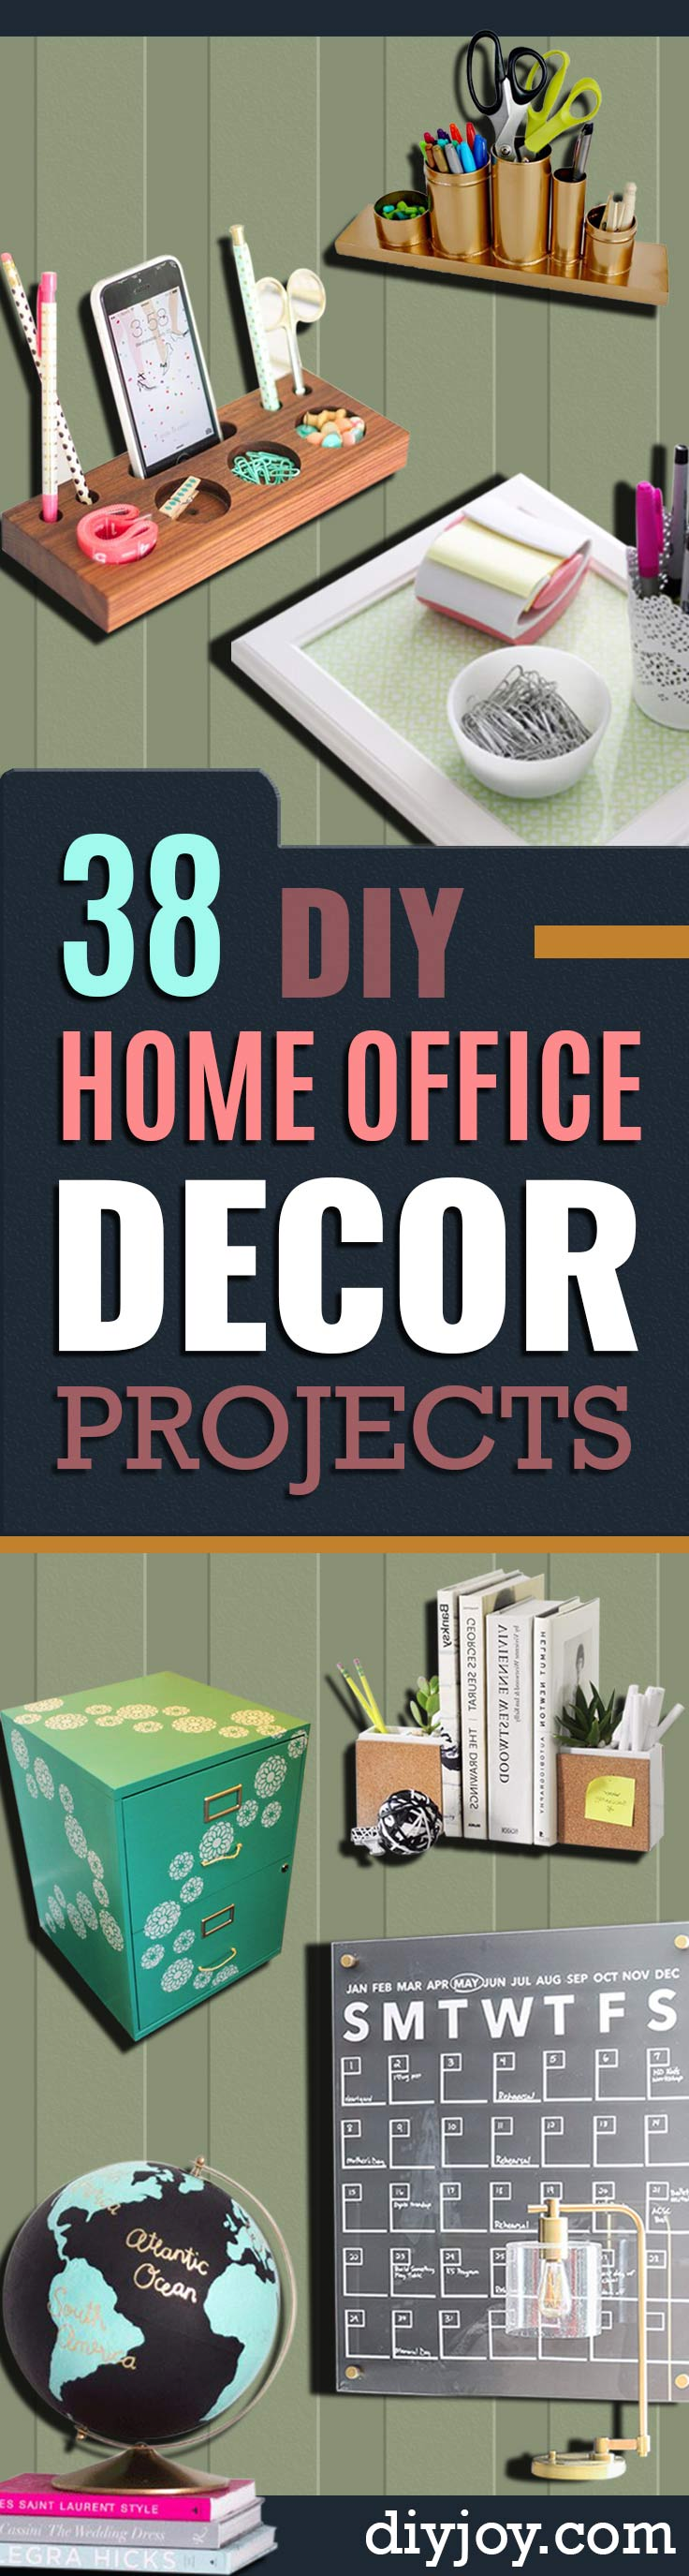 38 brilliant home office decor projects diy home office decor ideas do it yourself desks tables wall art solutioingenieria Choice Image